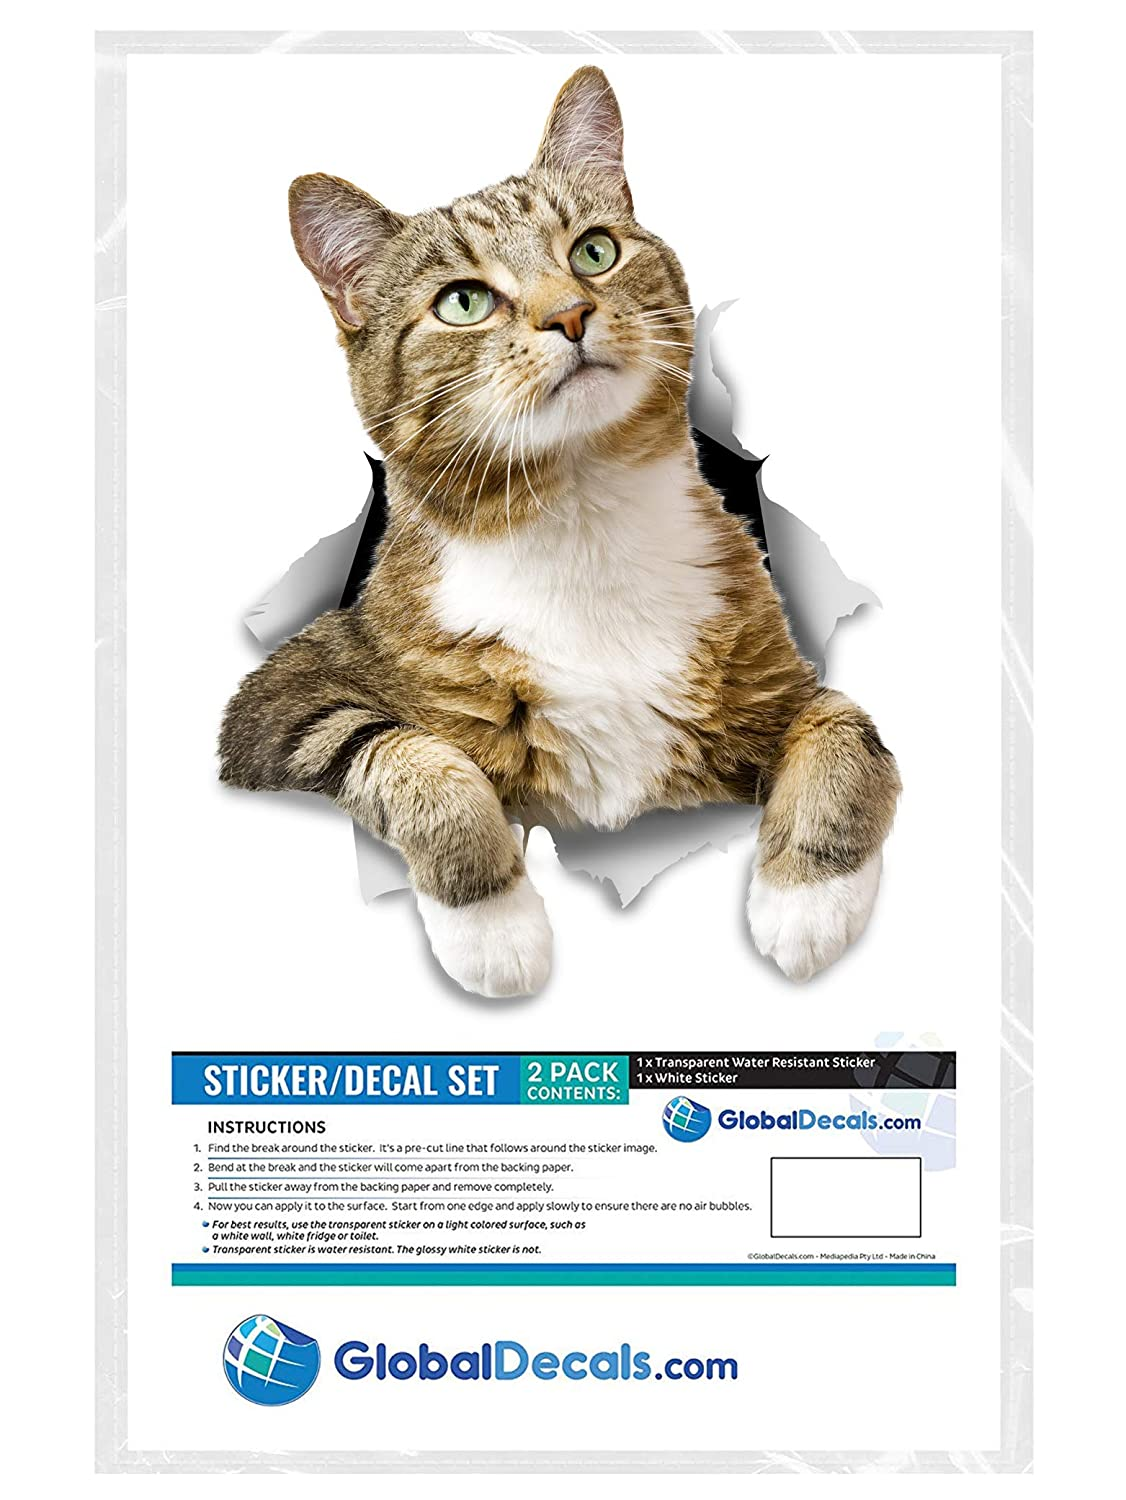 Amazon.com: Winston & Bear 3D Cat Stickers - 2 Pack - Pondering Tabby Stickers for Wall, Fridge, Toilet and More - Retail Packaged Tabby Cat Stickers: Home ...